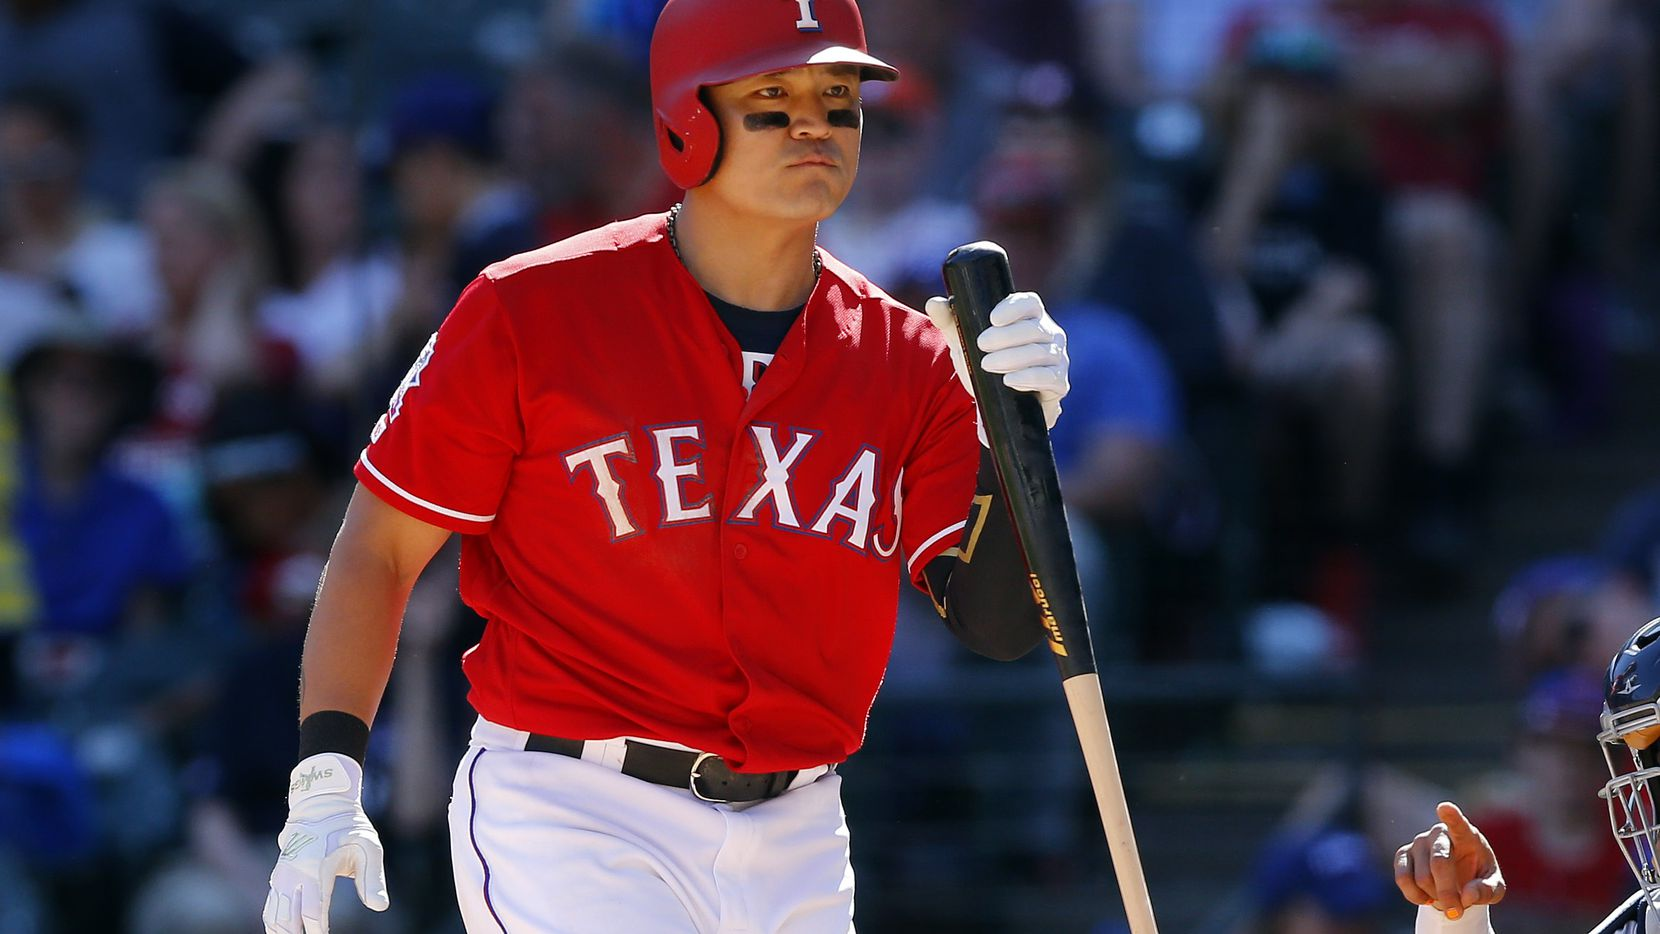 Texas Rangers batter Shin-Soo Choo (17) reacts at the plate as he bats in the eighth inning at Globe Life Park in Arlington, Texas, April 21, 2019. (Tom Fox/The Dallas Morning News)